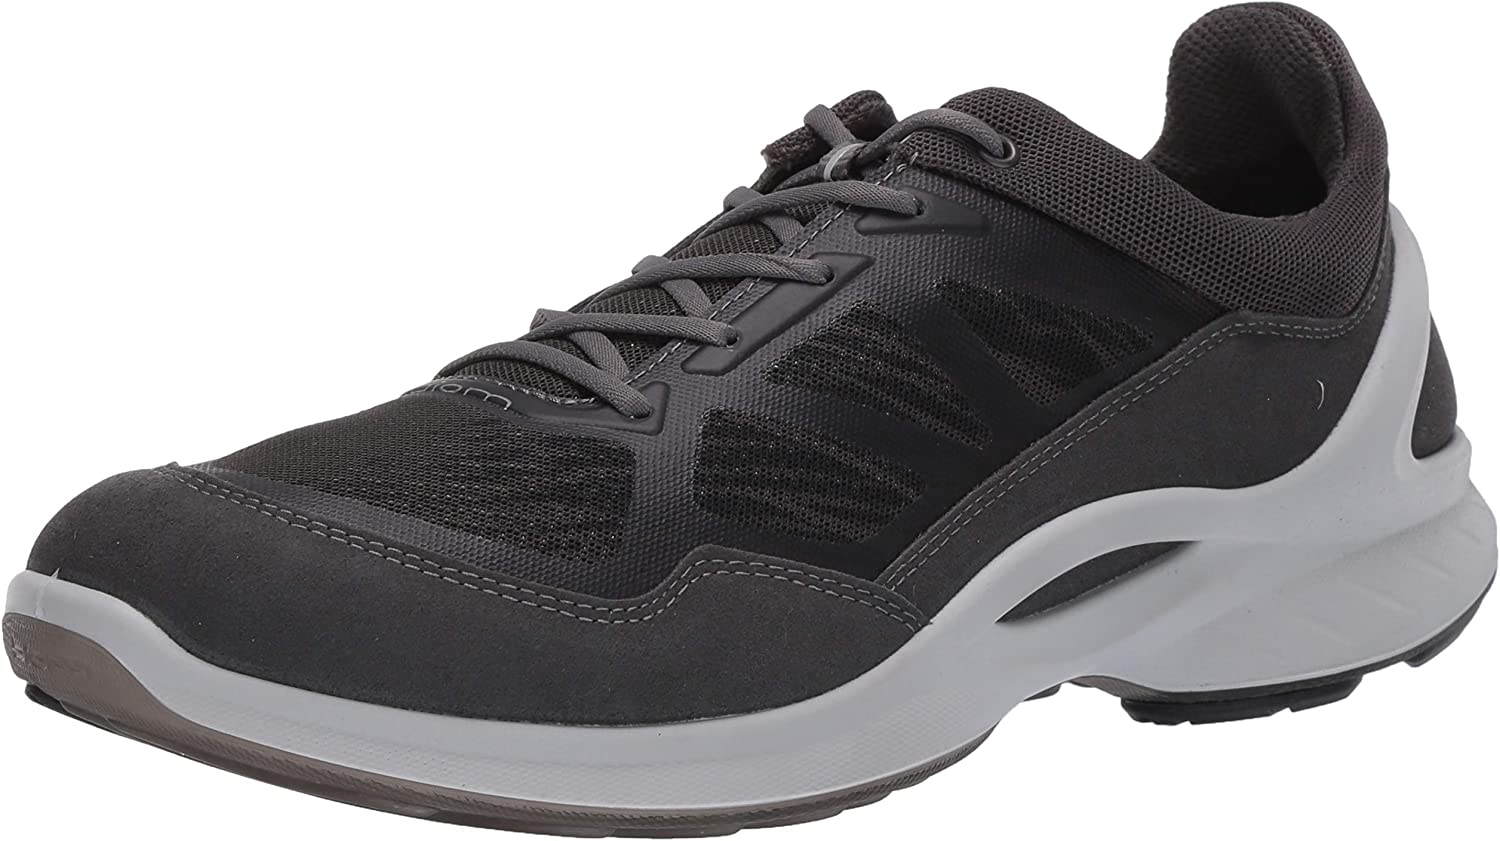 ECCO Men s Biom Fjuel Racer Running Shoe